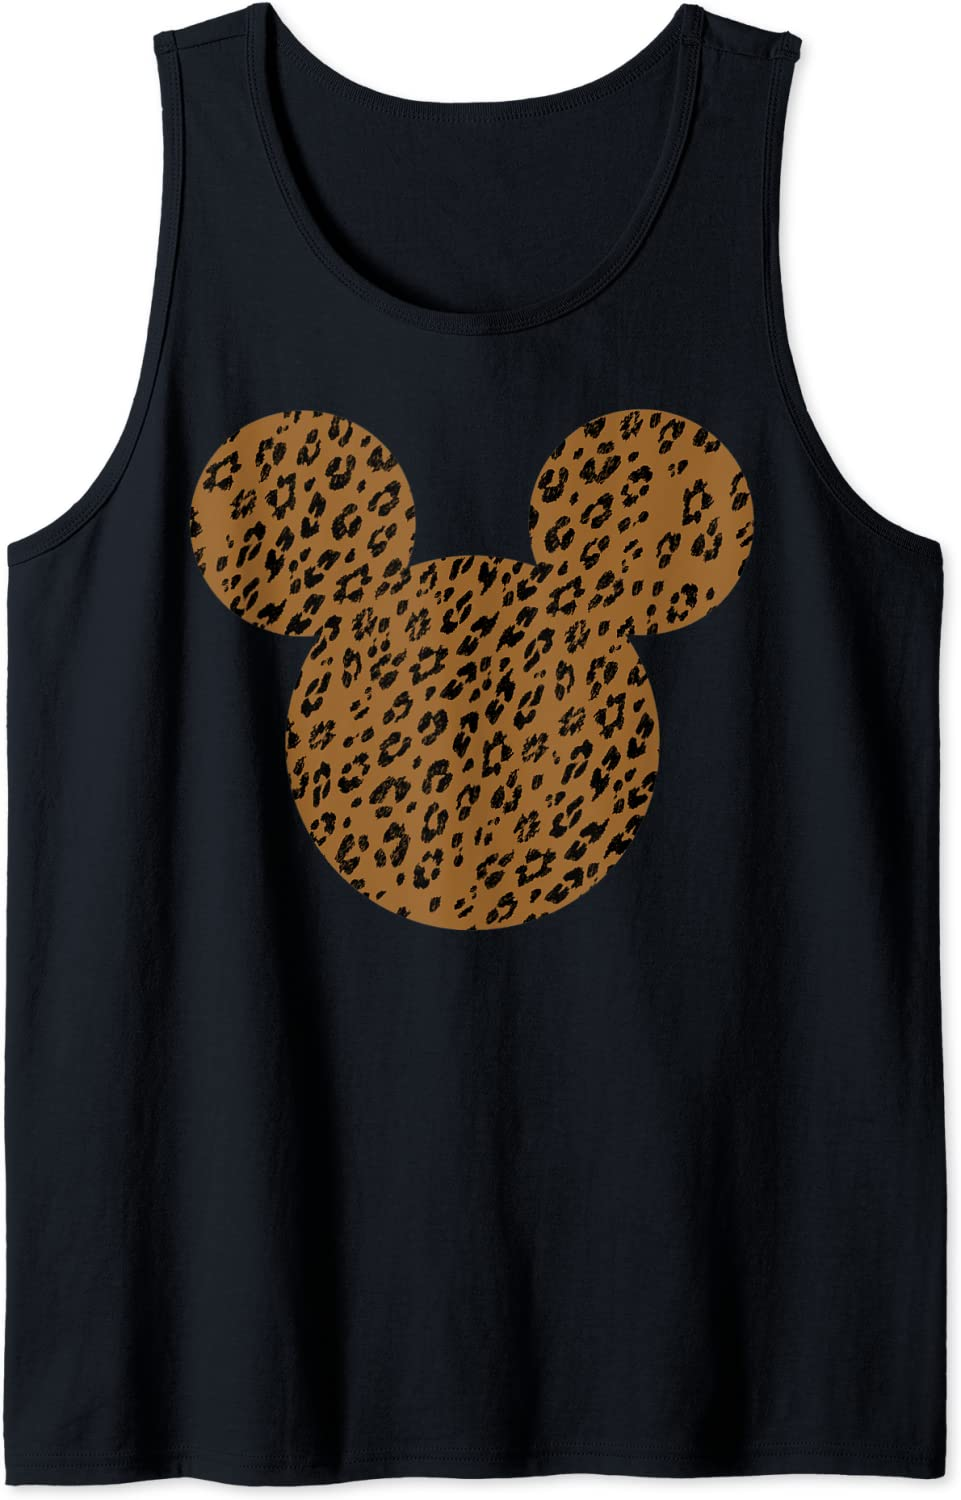 Disney Max 43% OFF Mickey And Friends Clearance SALE Limited time Mouse Cheetah Top Tank Print